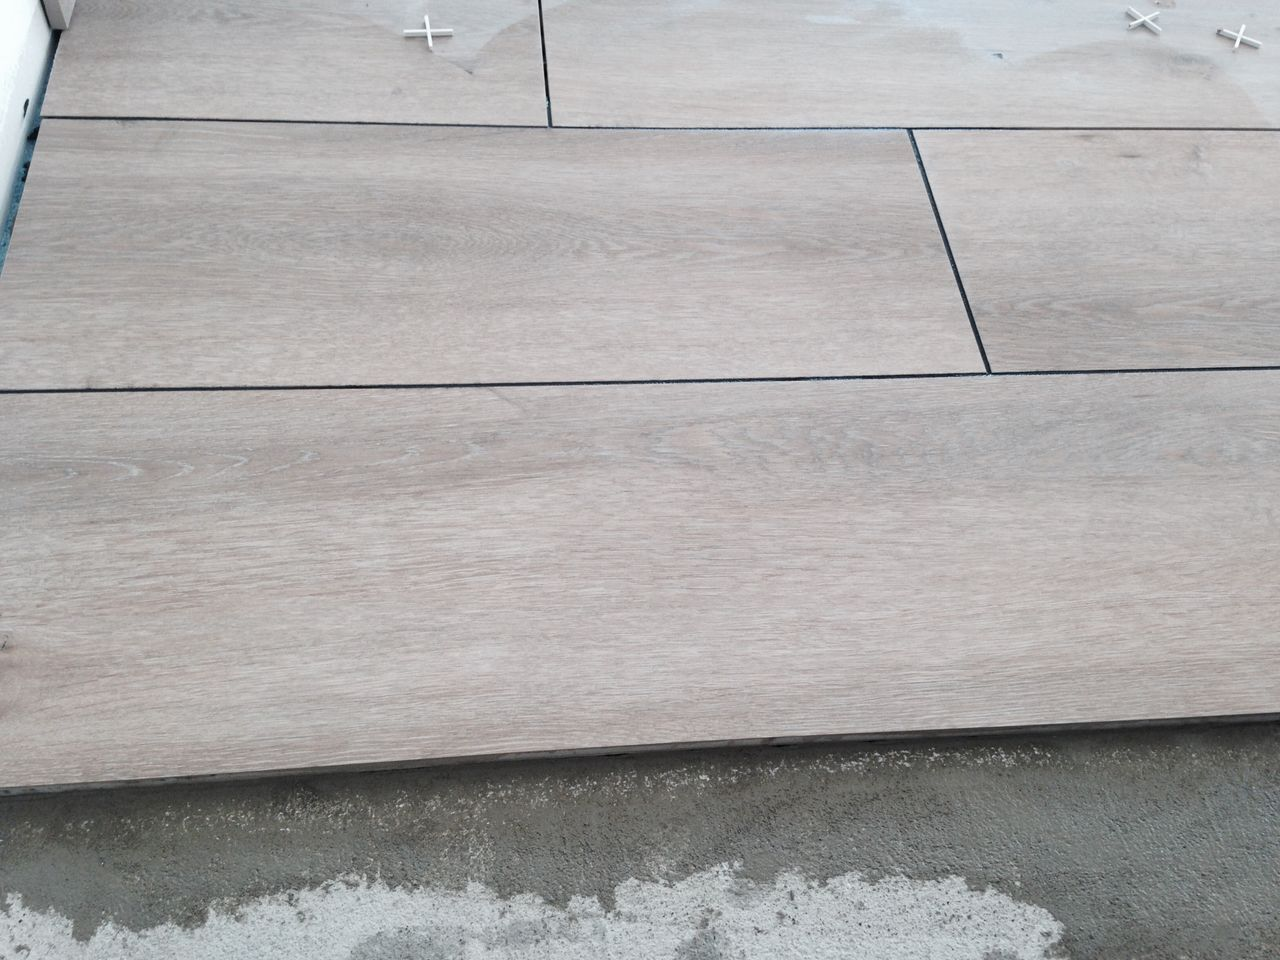 Quelle couleur de joints pour carrelage imitation parquet for Pose de joint carrelage